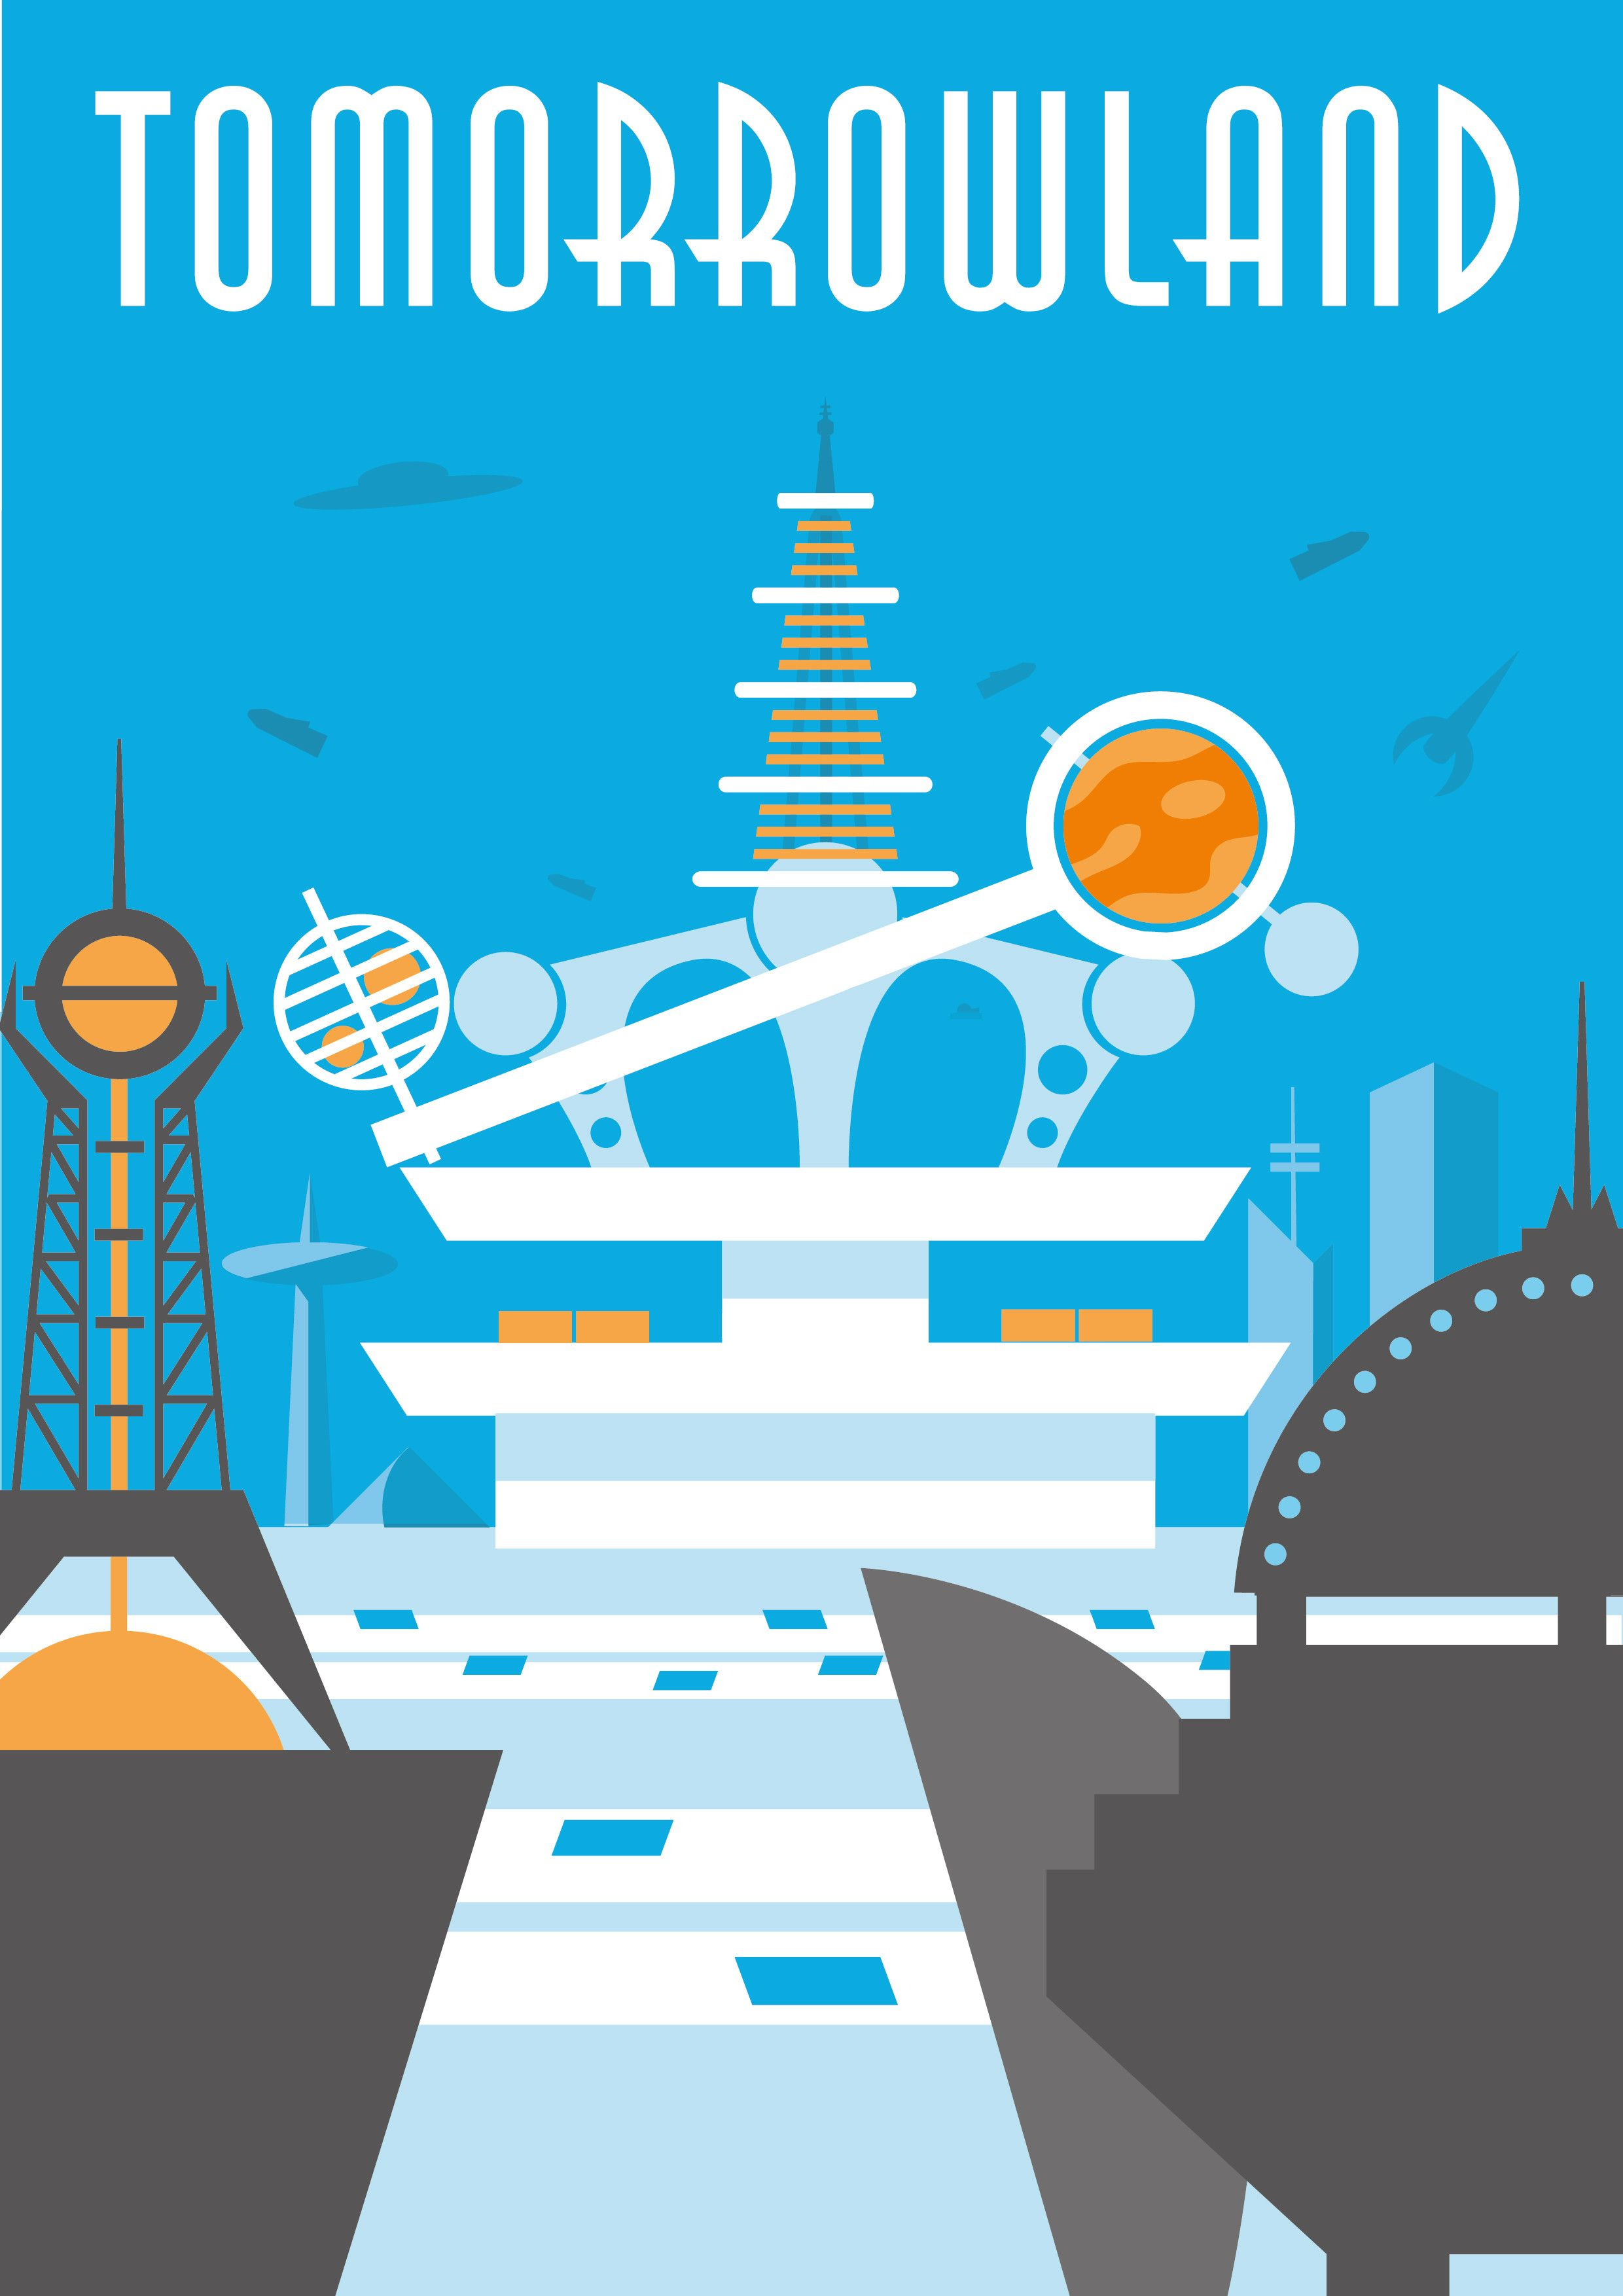 Poster design process - Tomorrowland Poster Including A Walkthrough Of The Design Process